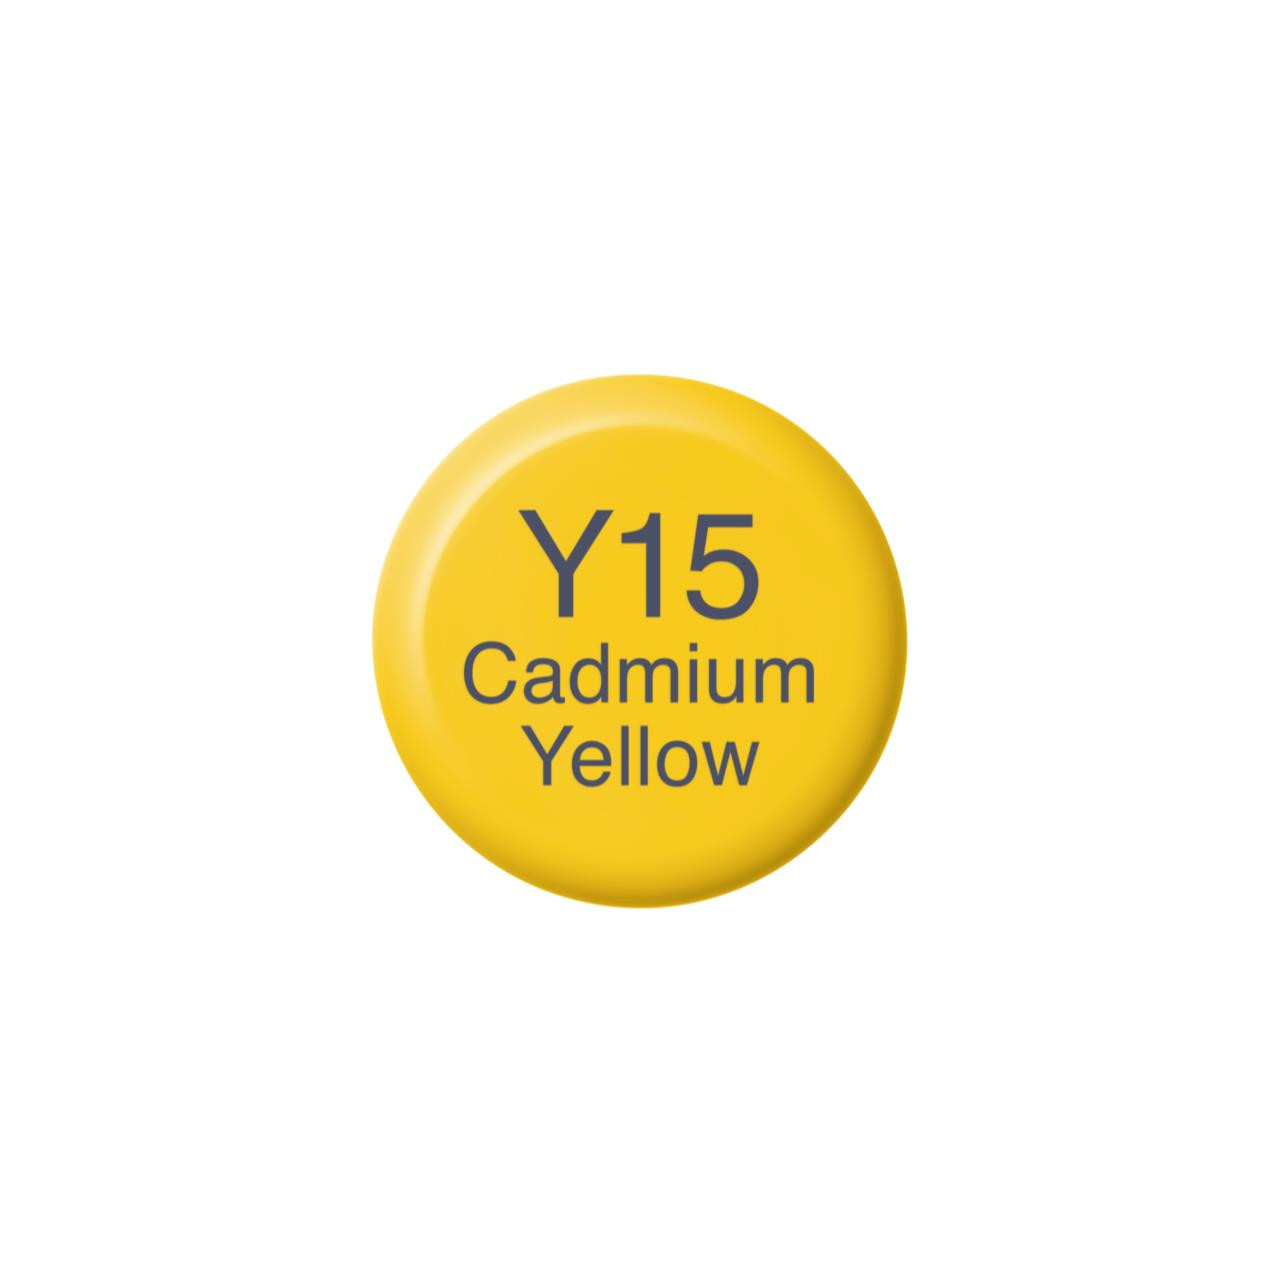 Y15 Cadmium Yellow, Copic Ink - 4511338058220